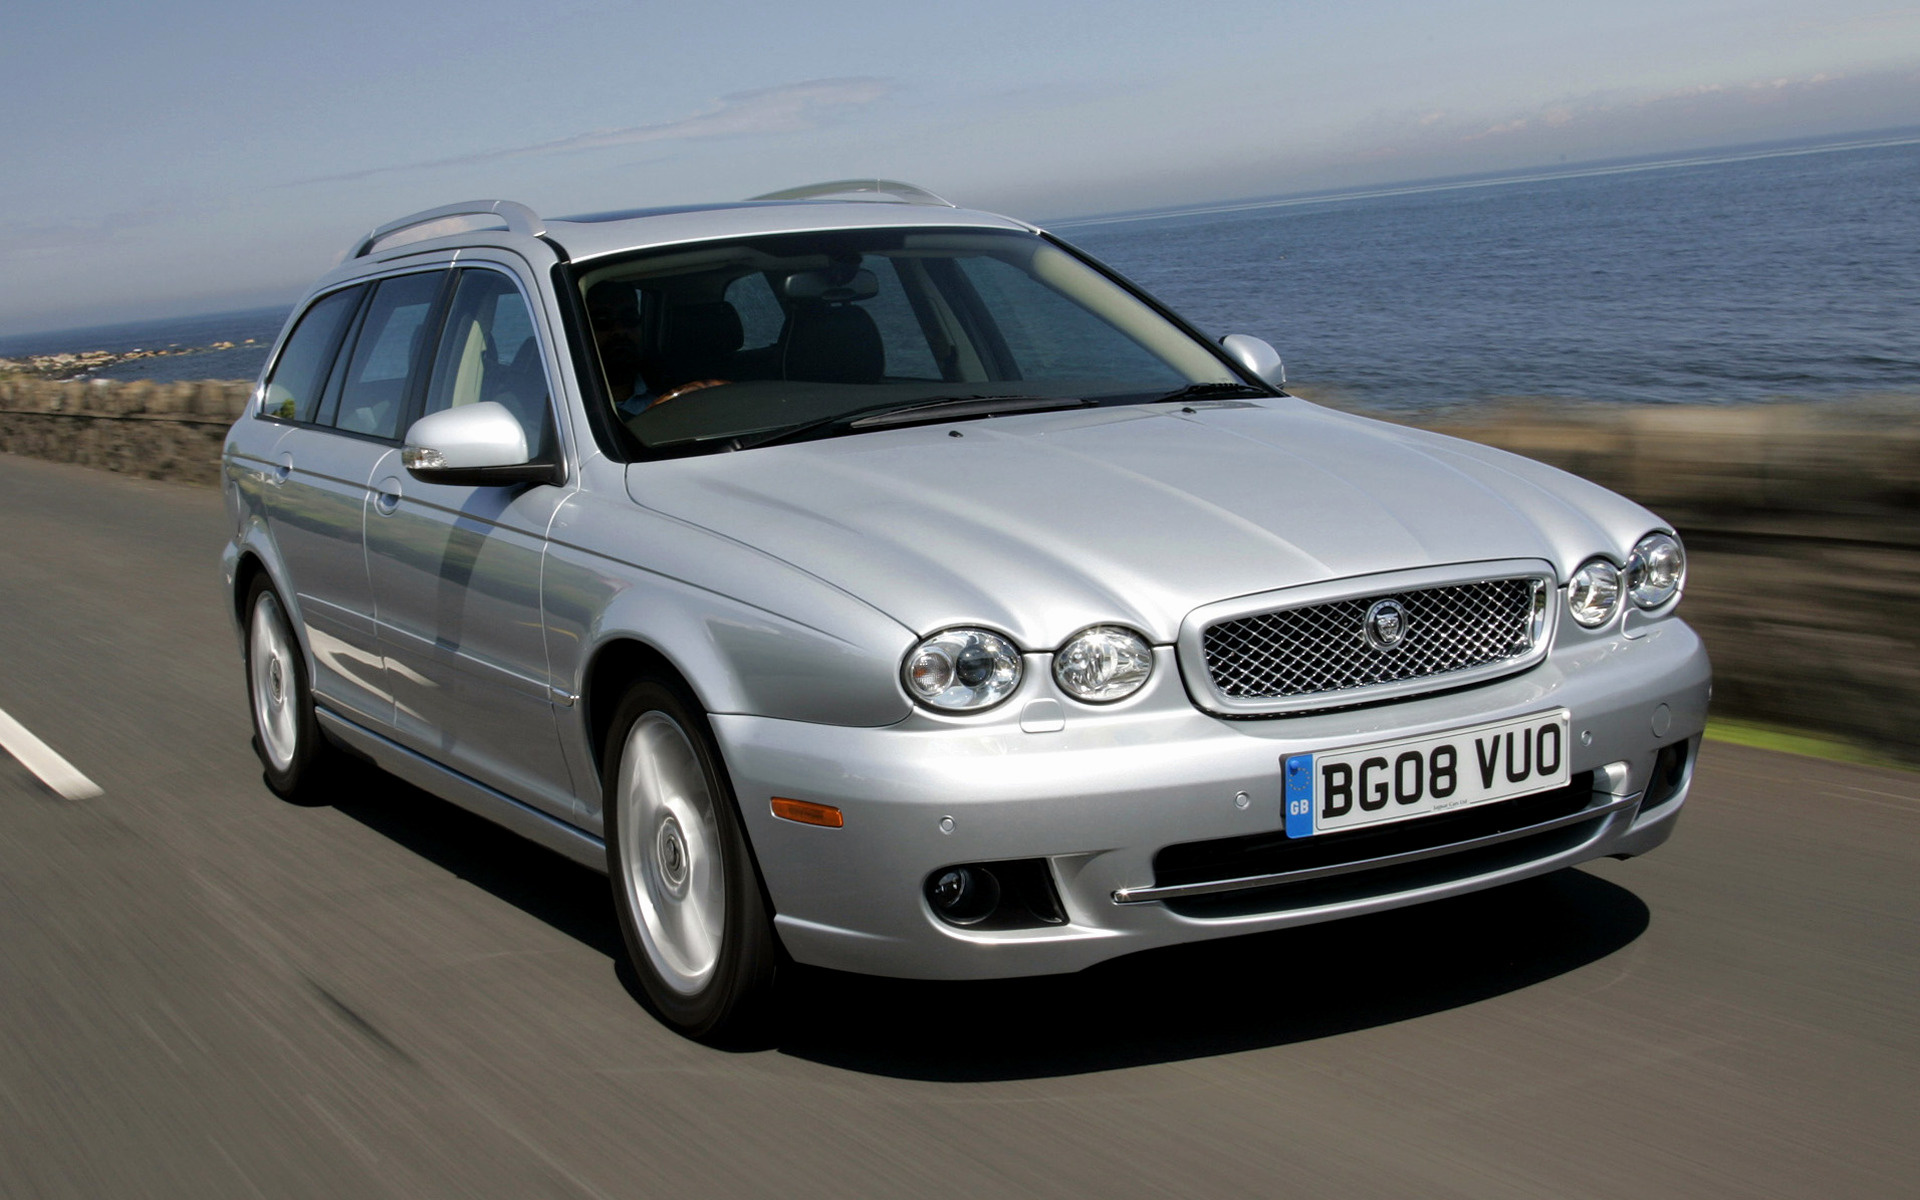 jaguar x type estate 2007 uk wallpapers and hd images. Black Bedroom Furniture Sets. Home Design Ideas